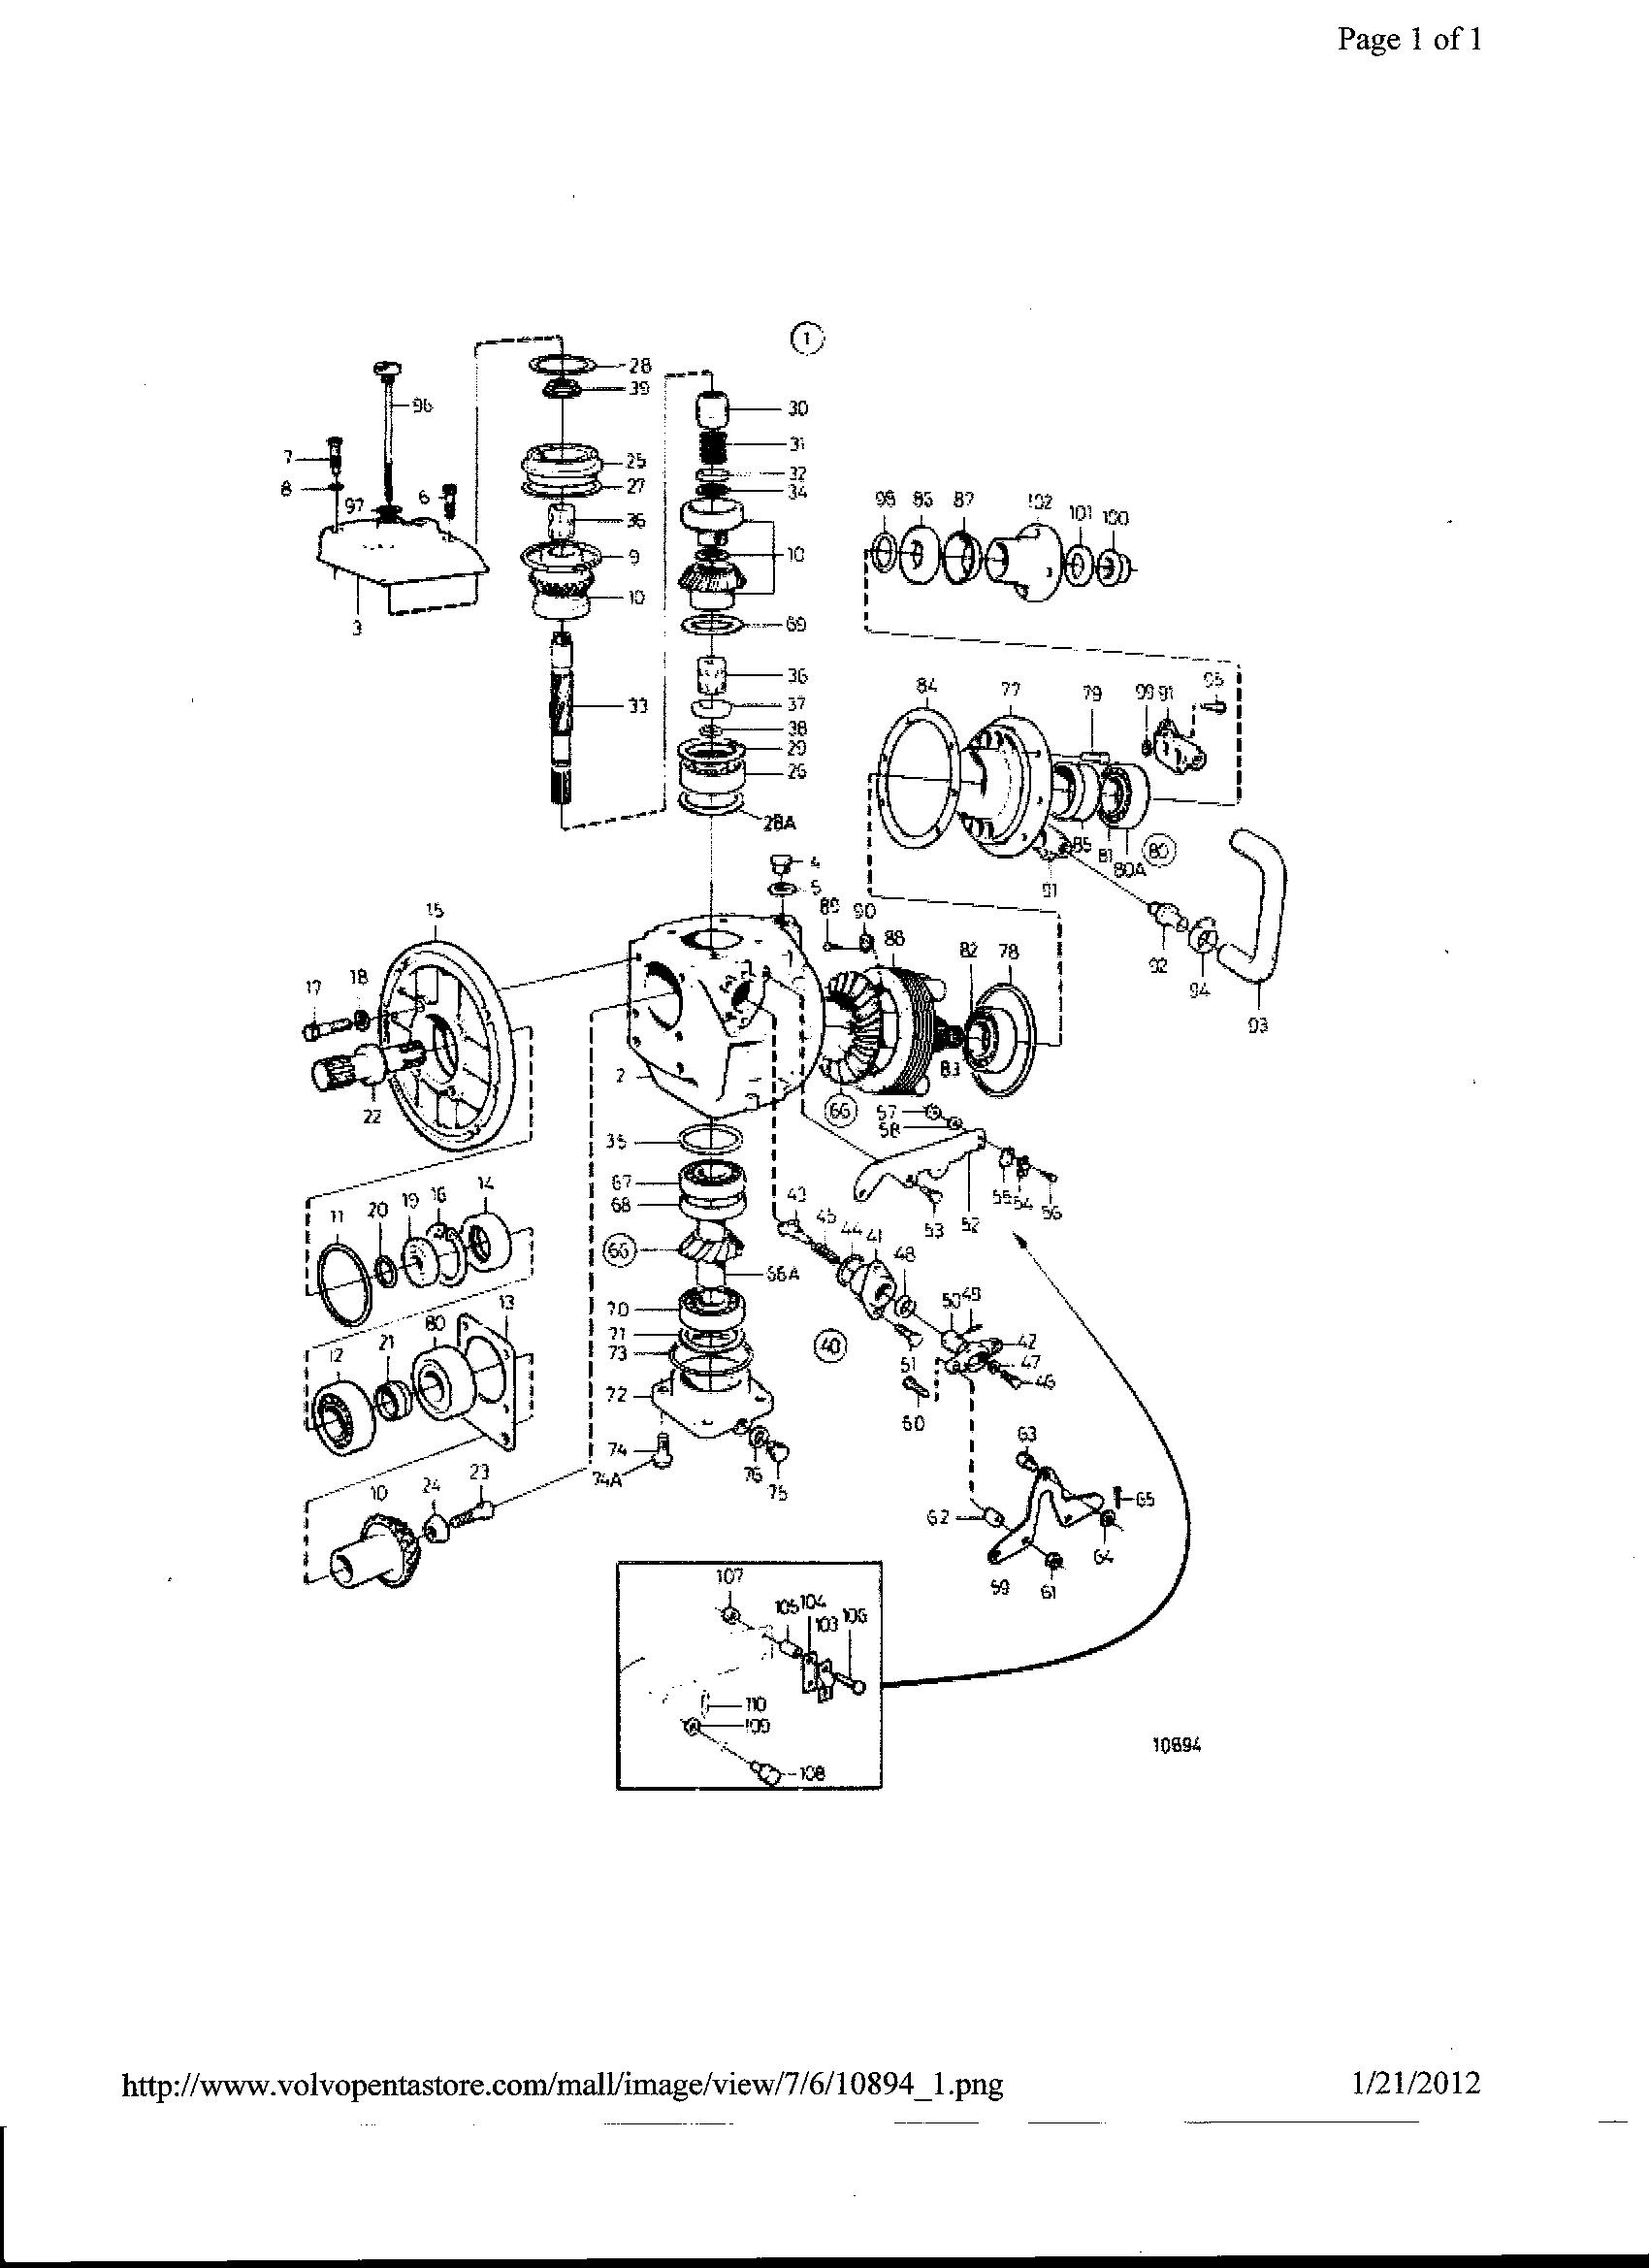 2002 dodge reverse light wiring diagram with Volvo Service Manual Images Reverse on 1966 Mustang Wiring Diagrams in addition T9671979 1986 ford f350 replace turn signal besides Park Neutral Switch Wiring Diagram 2003 F150 as well 1994 Honda Civic Fuse Box Location likewise 2011 Equinox Fuse Diagram.